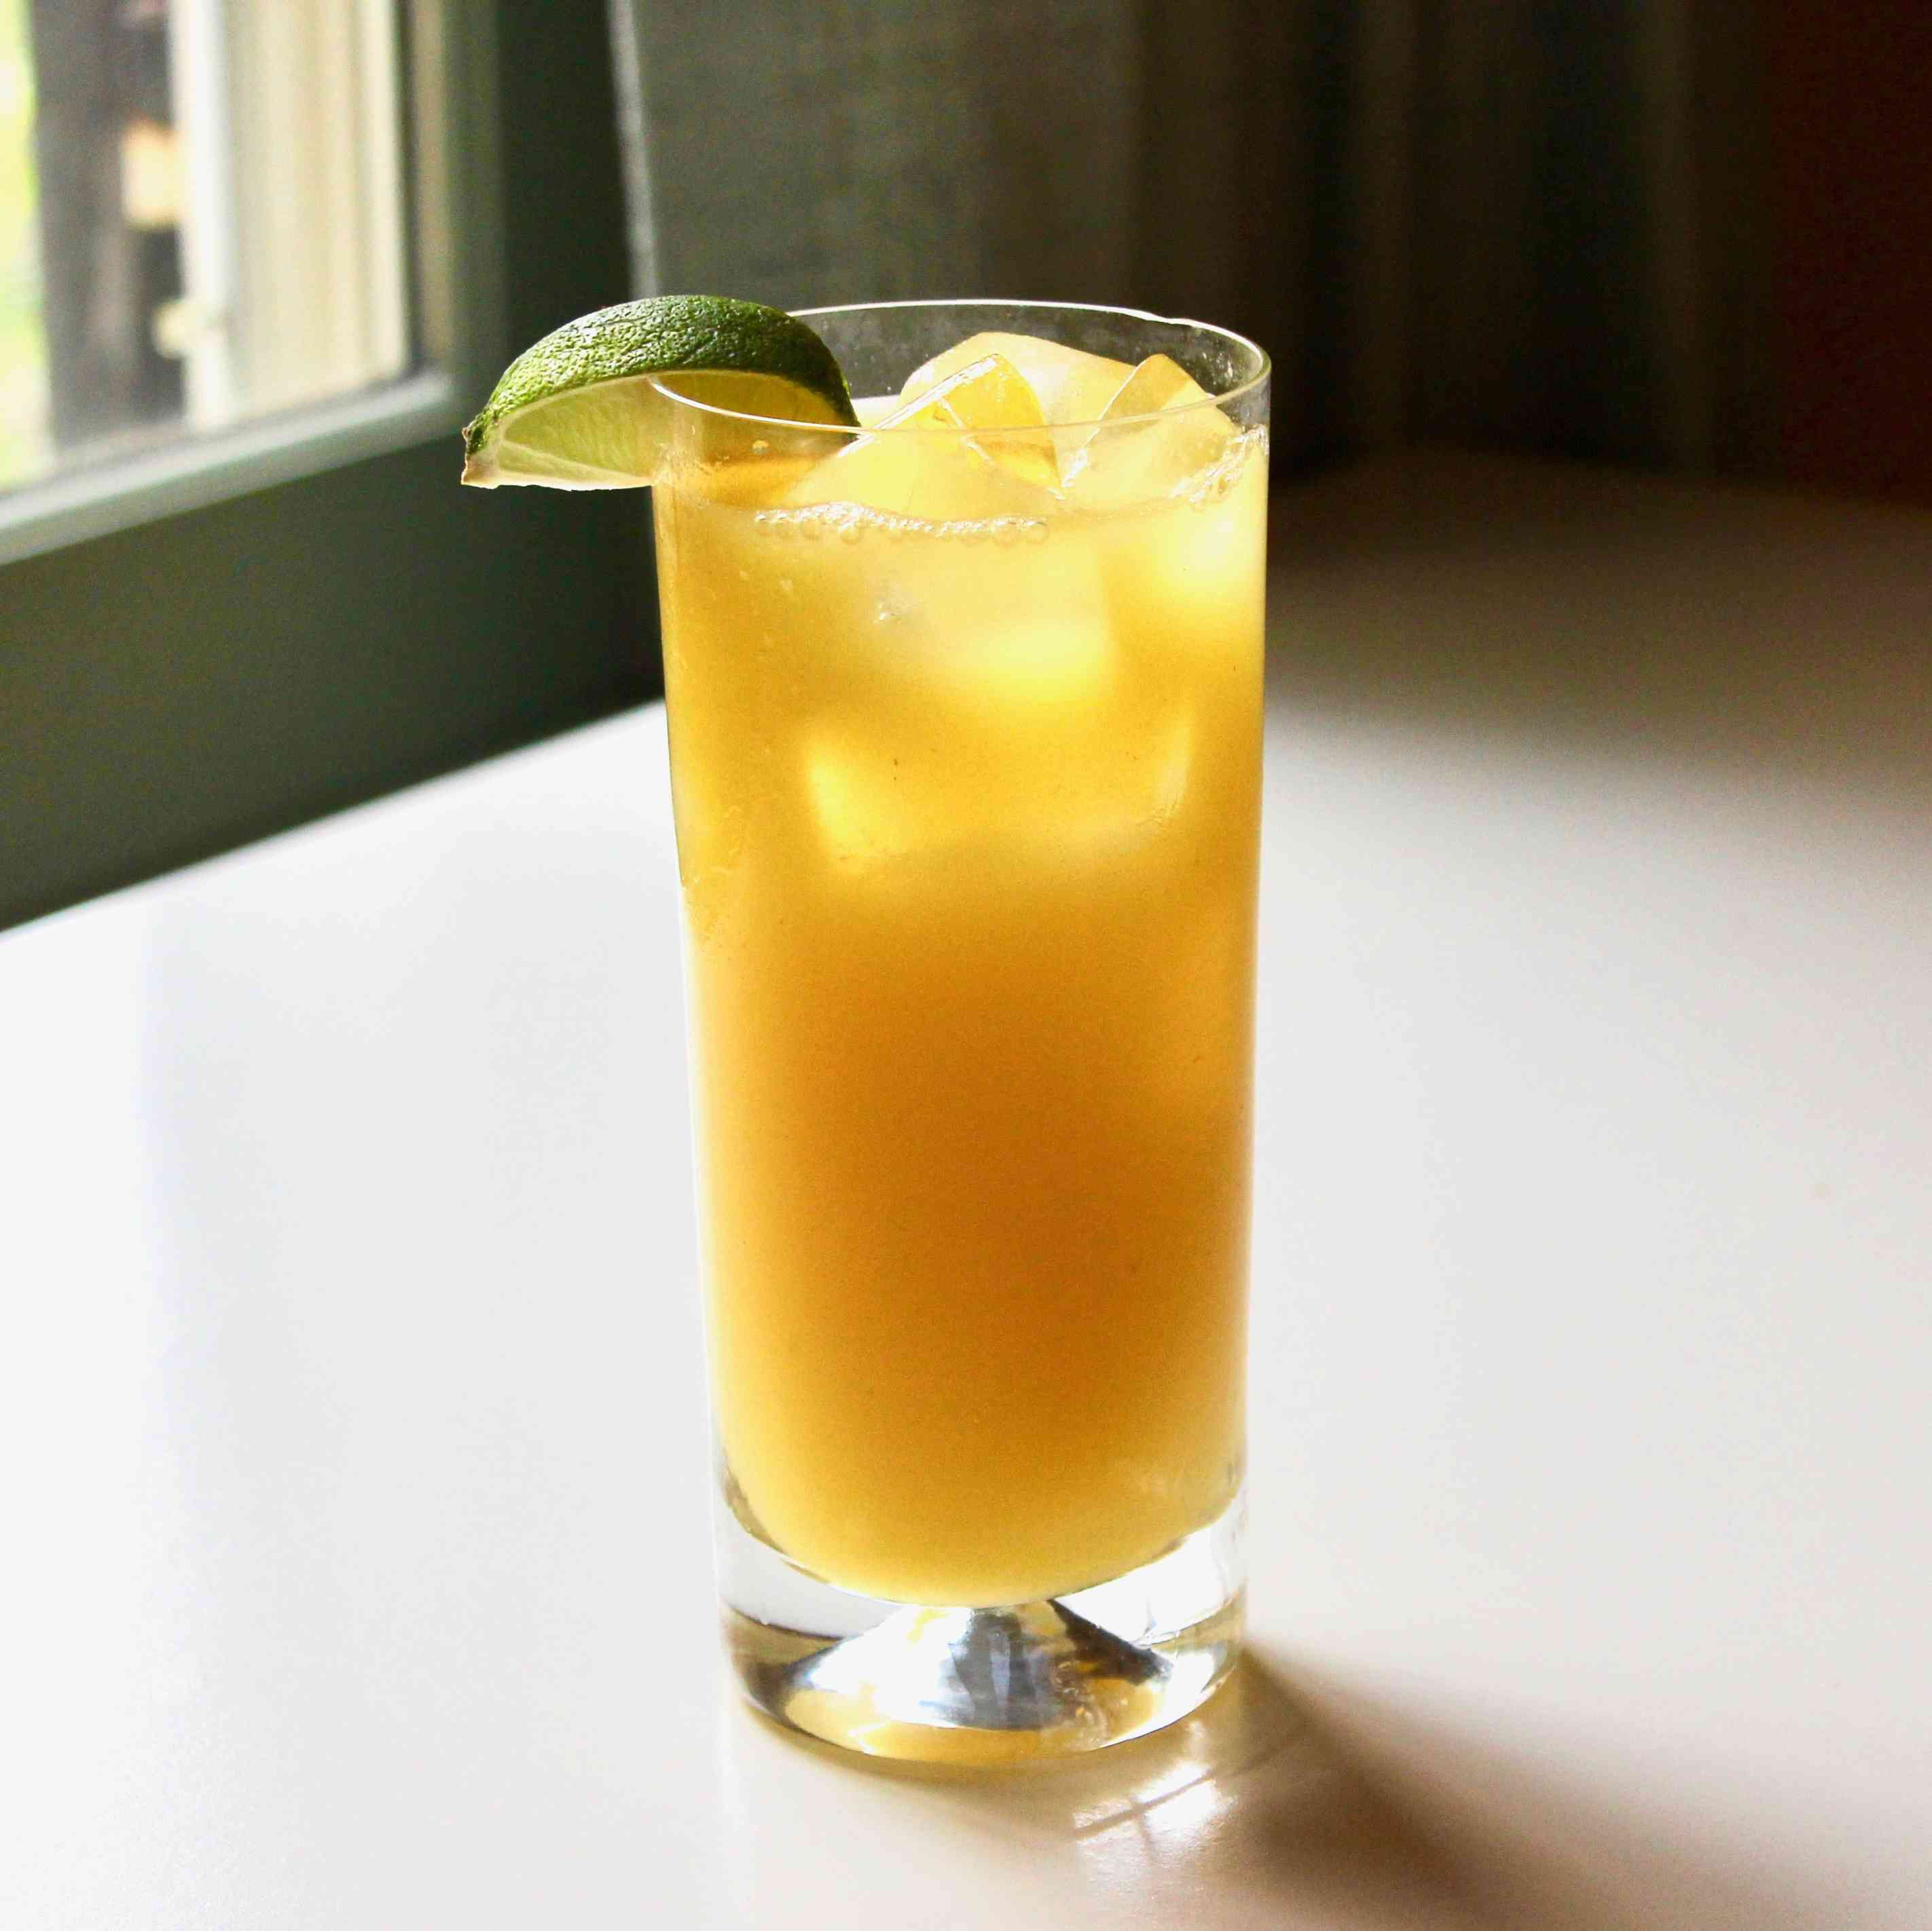 Pineapple Tequila Mixed Drink Tester Image